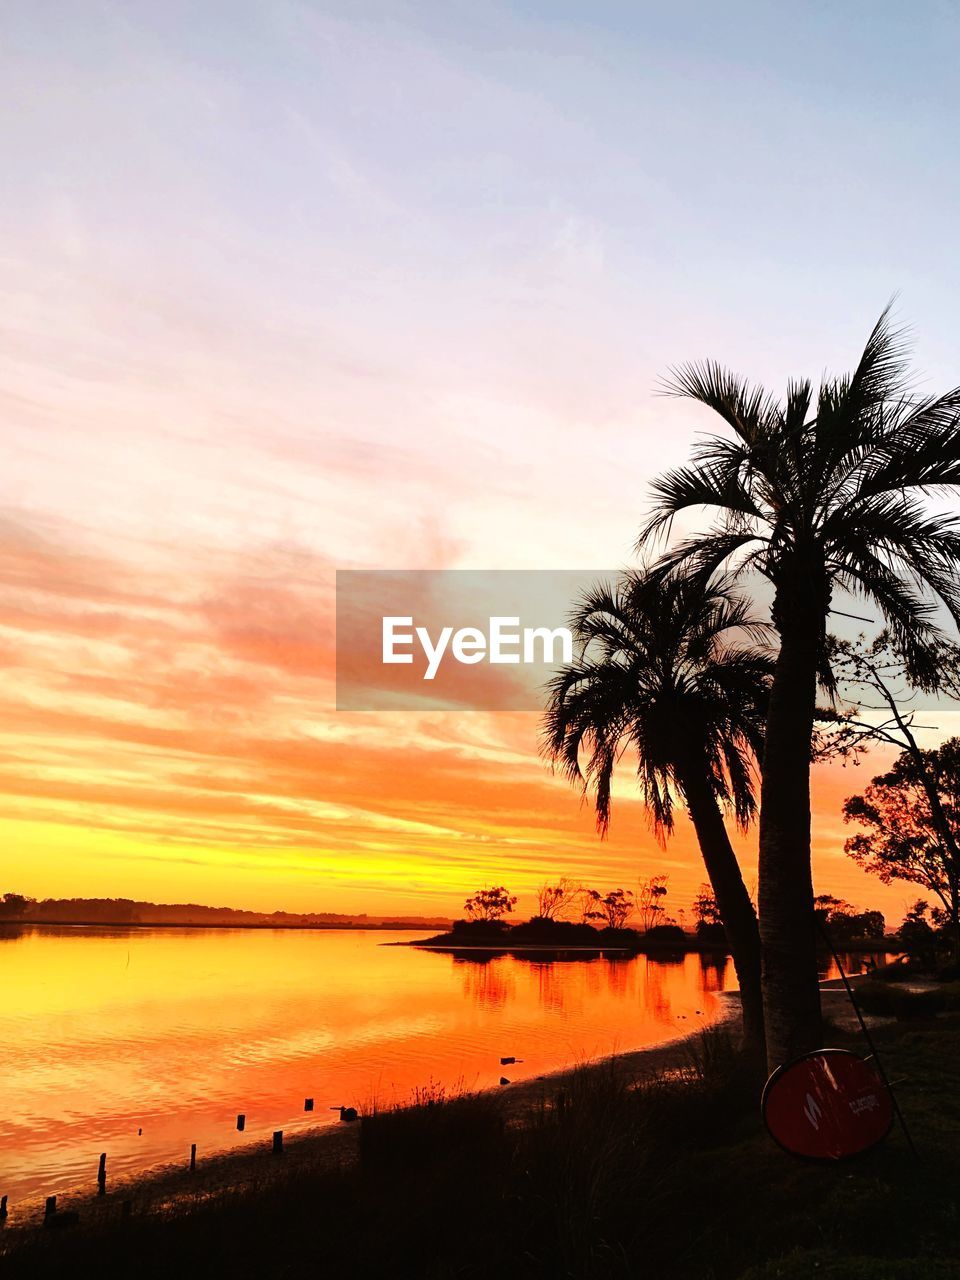 sunset, sky, tropical climate, palm tree, beauty in nature, water, tree, scenics - nature, plant, orange color, tranquil scene, tranquility, silhouette, cloud - sky, beach, nature, sea, no people, idyllic, outdoors, coconut palm tree, tropical tree, romantic sky